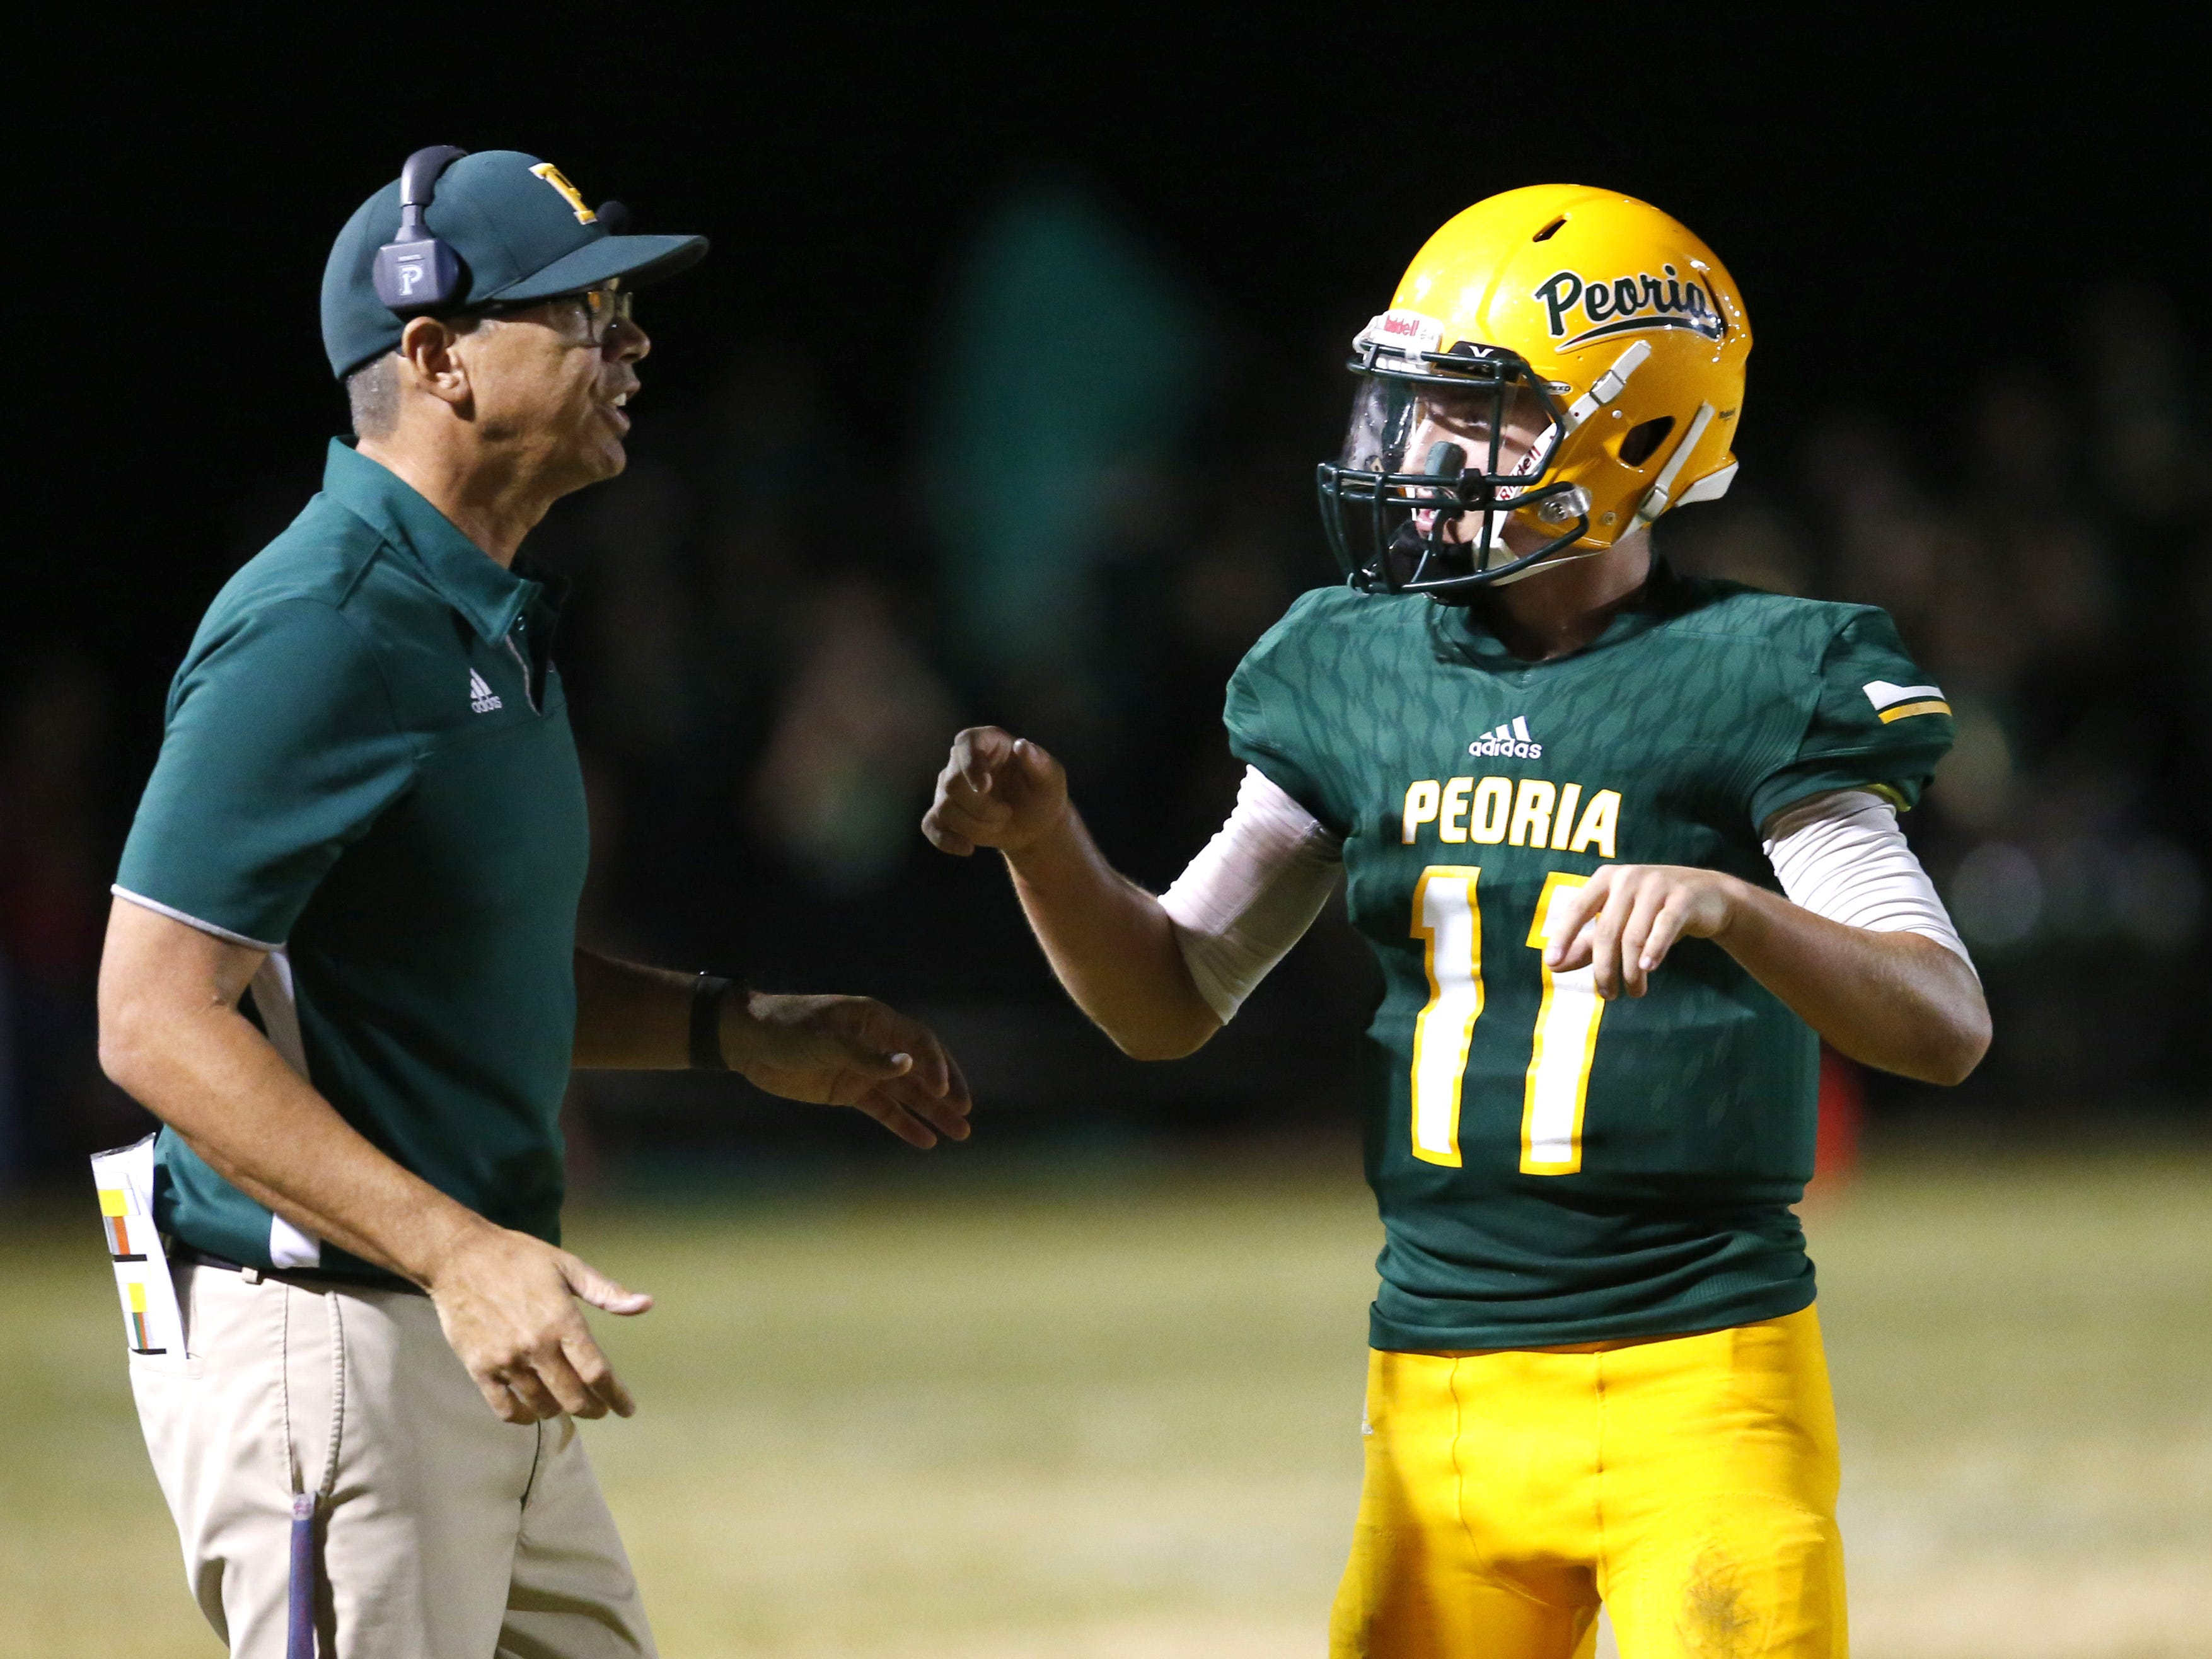 Peoria head coach Will Babb talks with quarterback Kyle Samford (11) during a football game against Cactus at Peoria High on October 26. #azhsfb